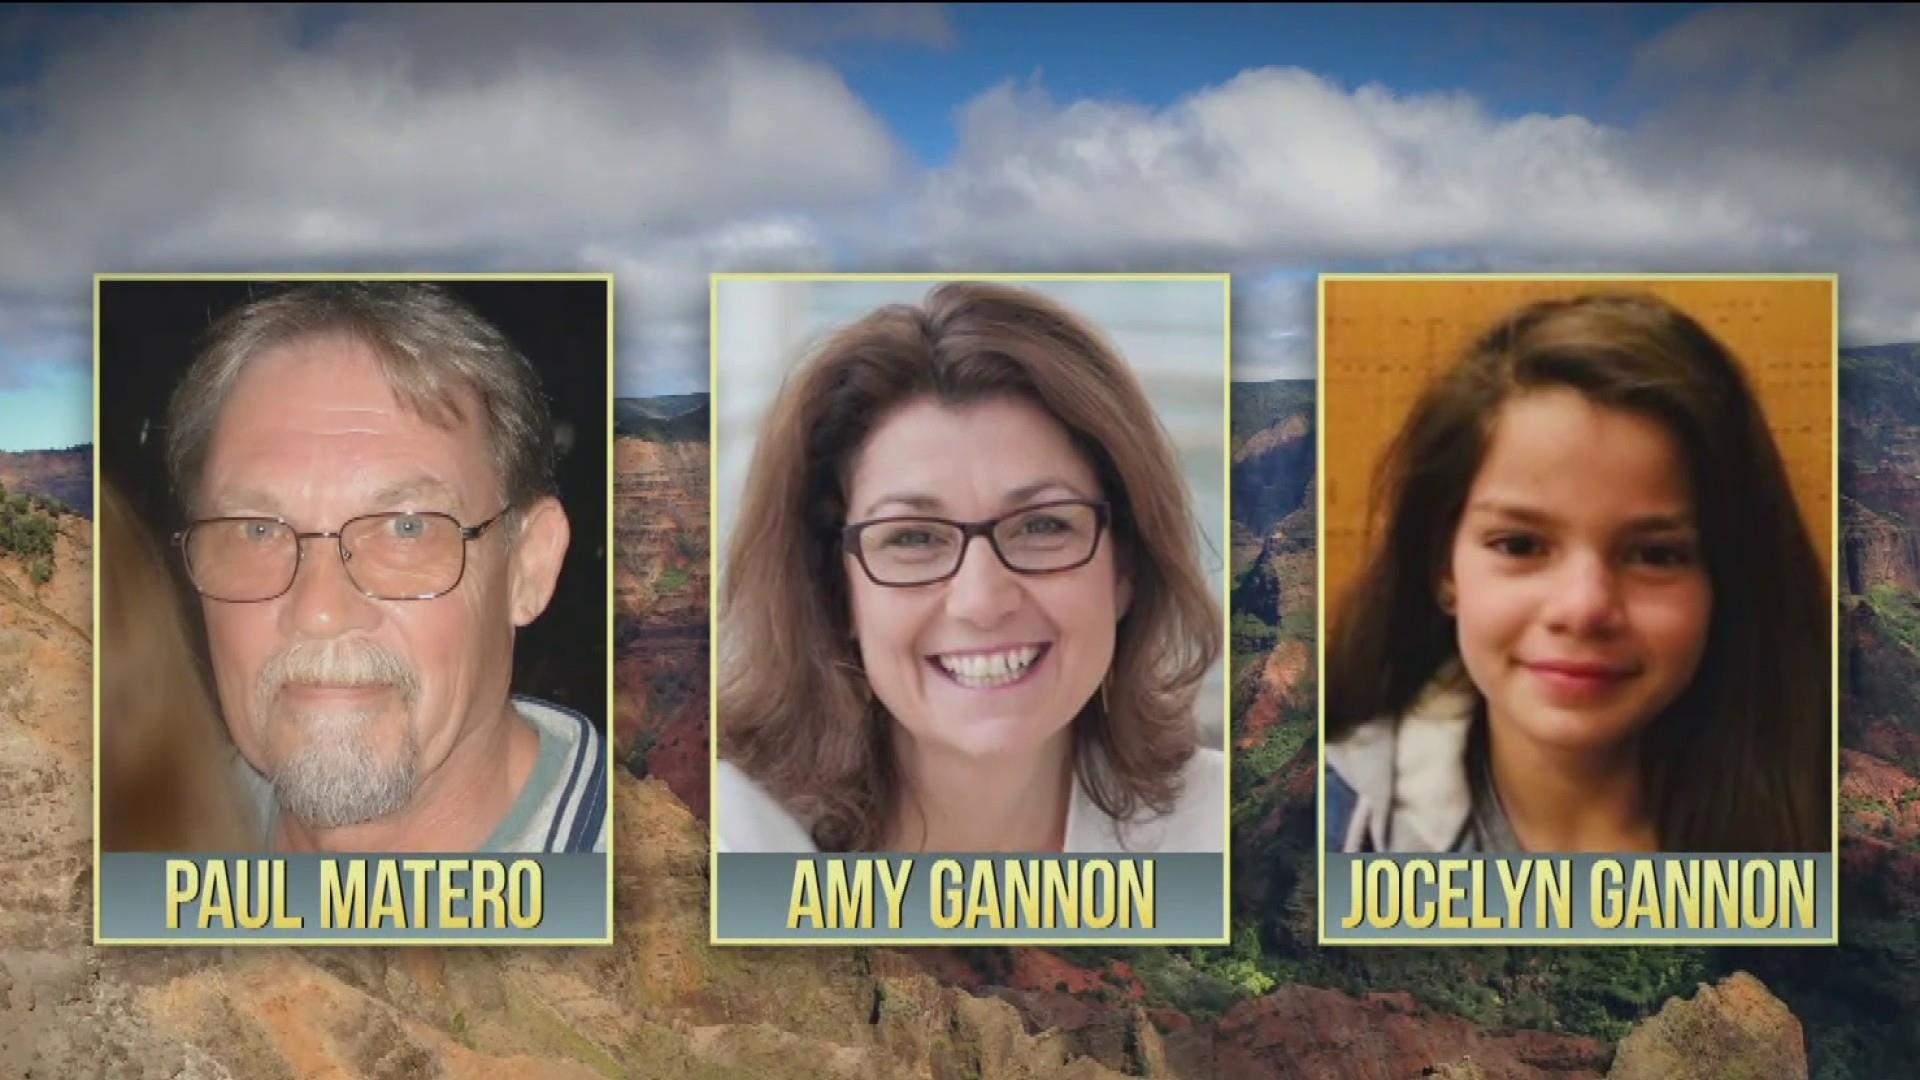 Remains of 6 people found at site of tour helicopter crash in Hawaii